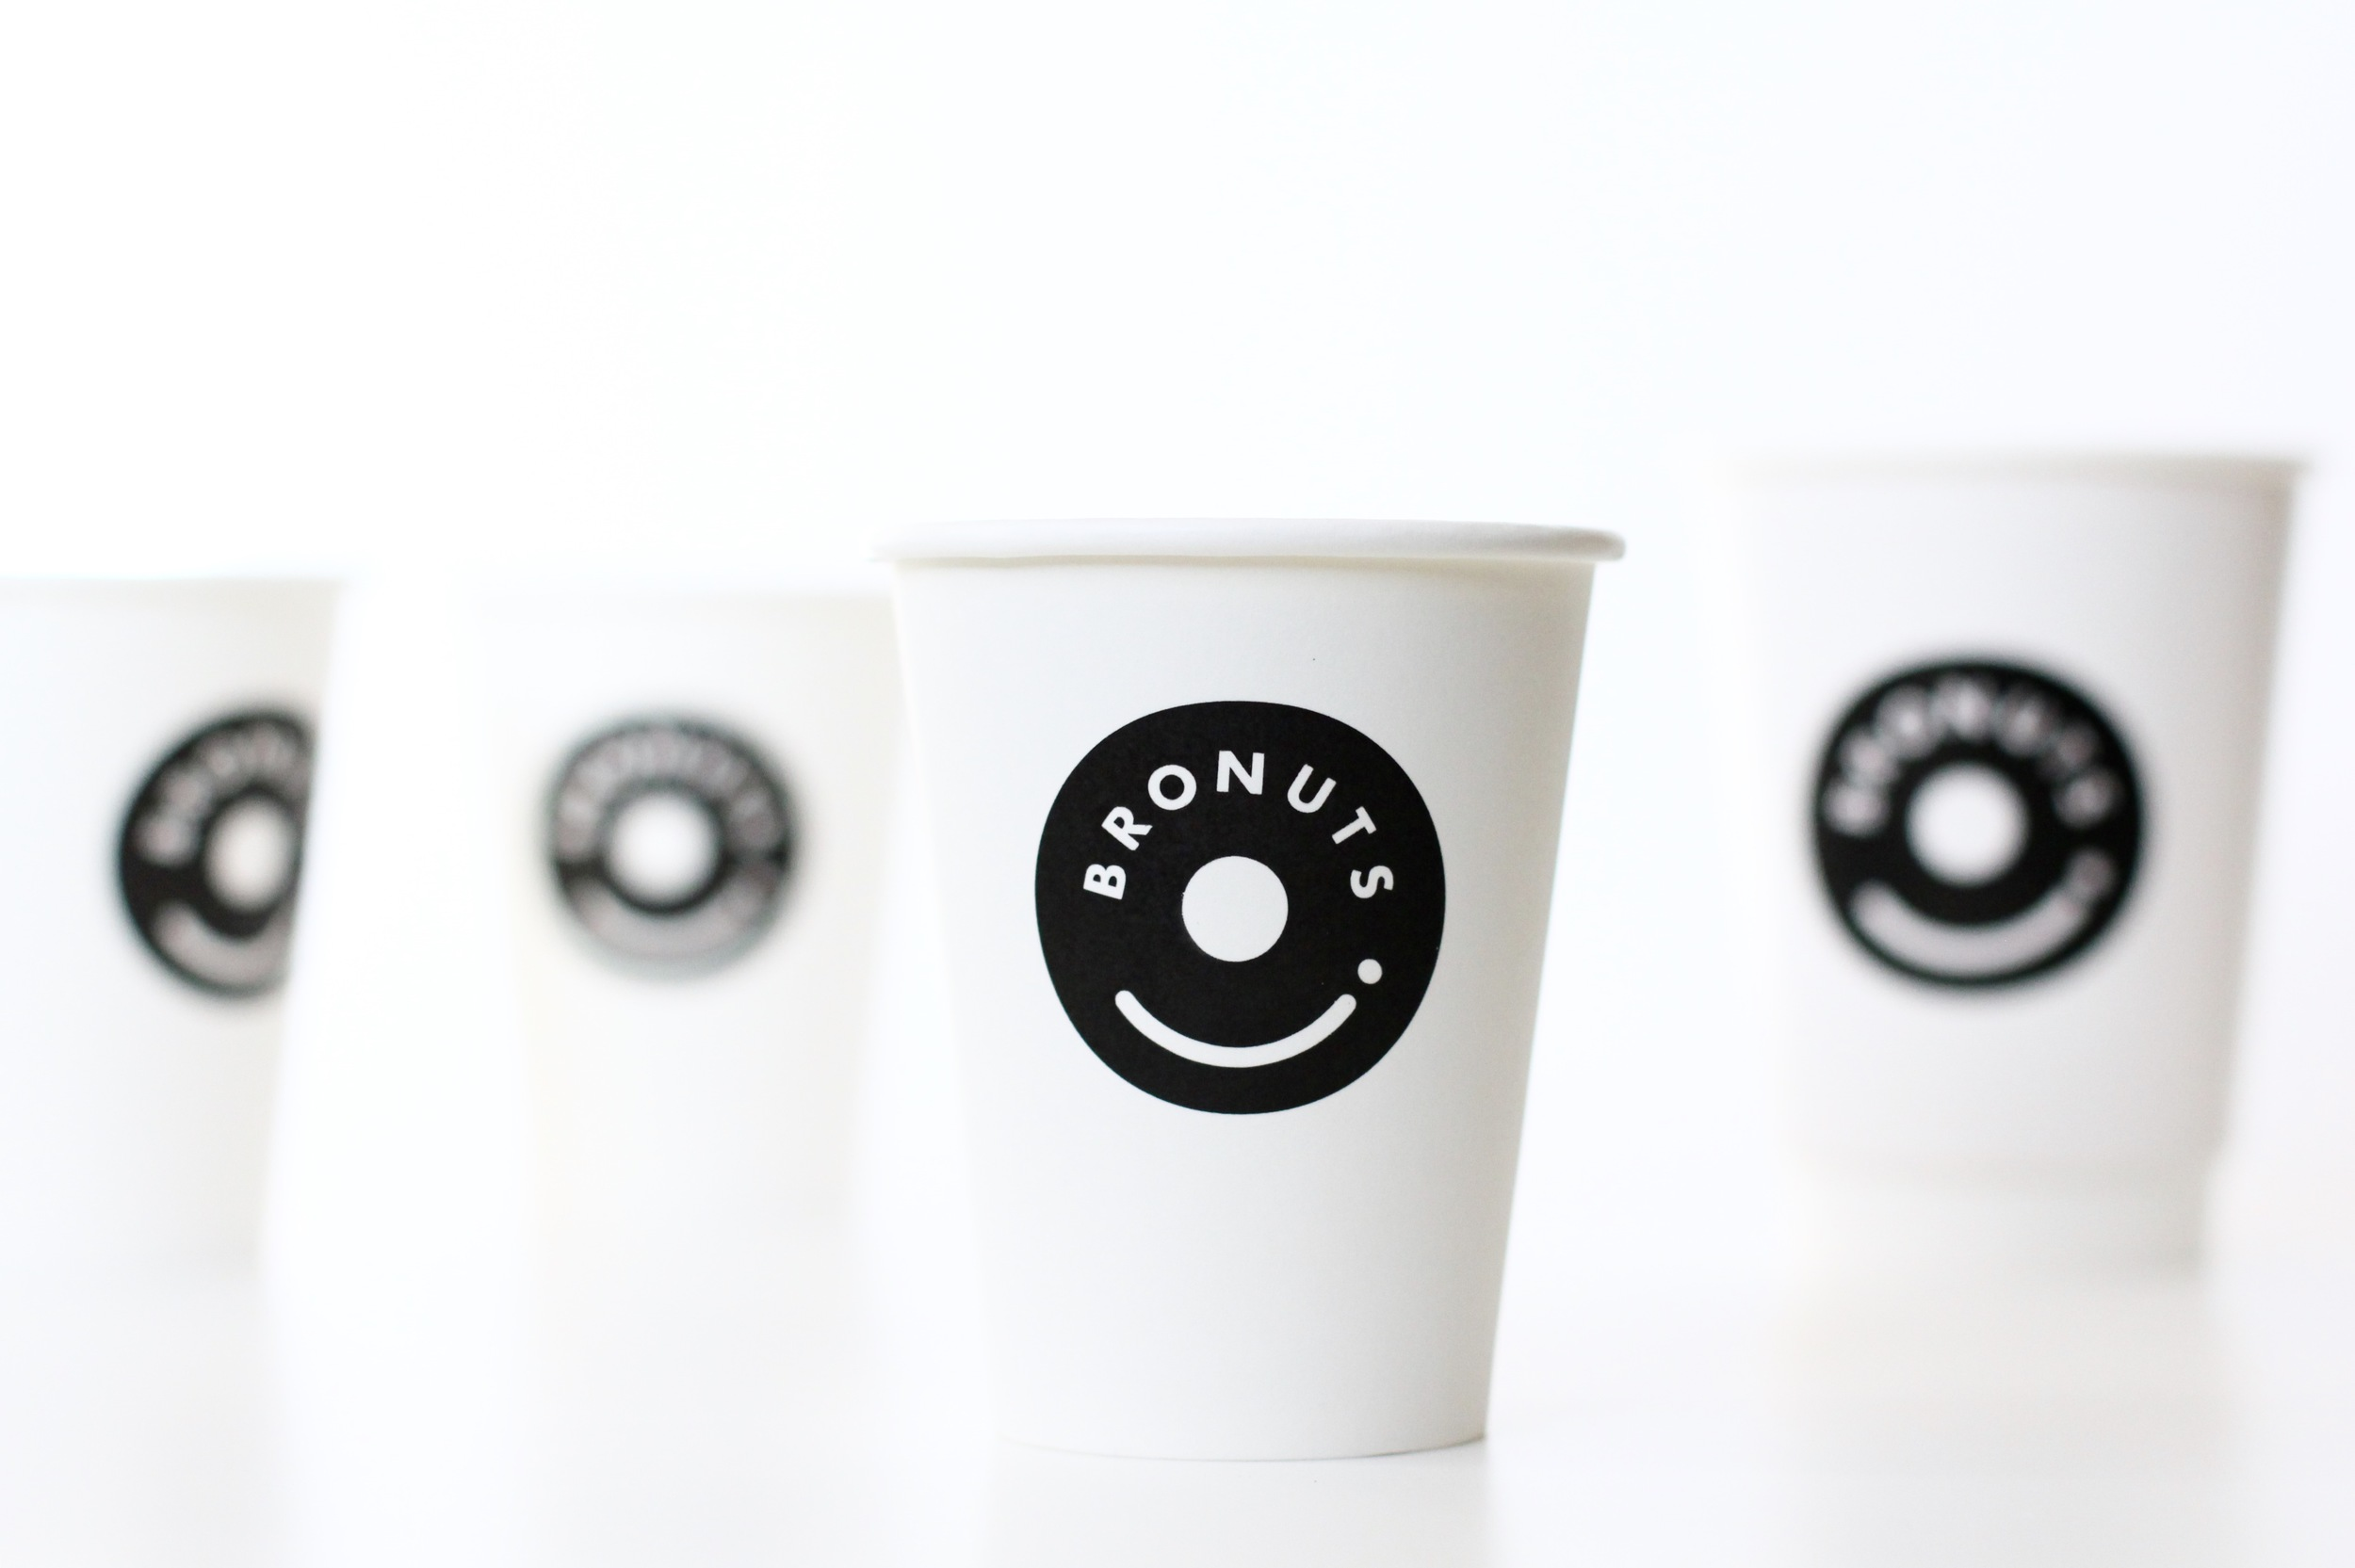 bronuts donuts product photography.jpg